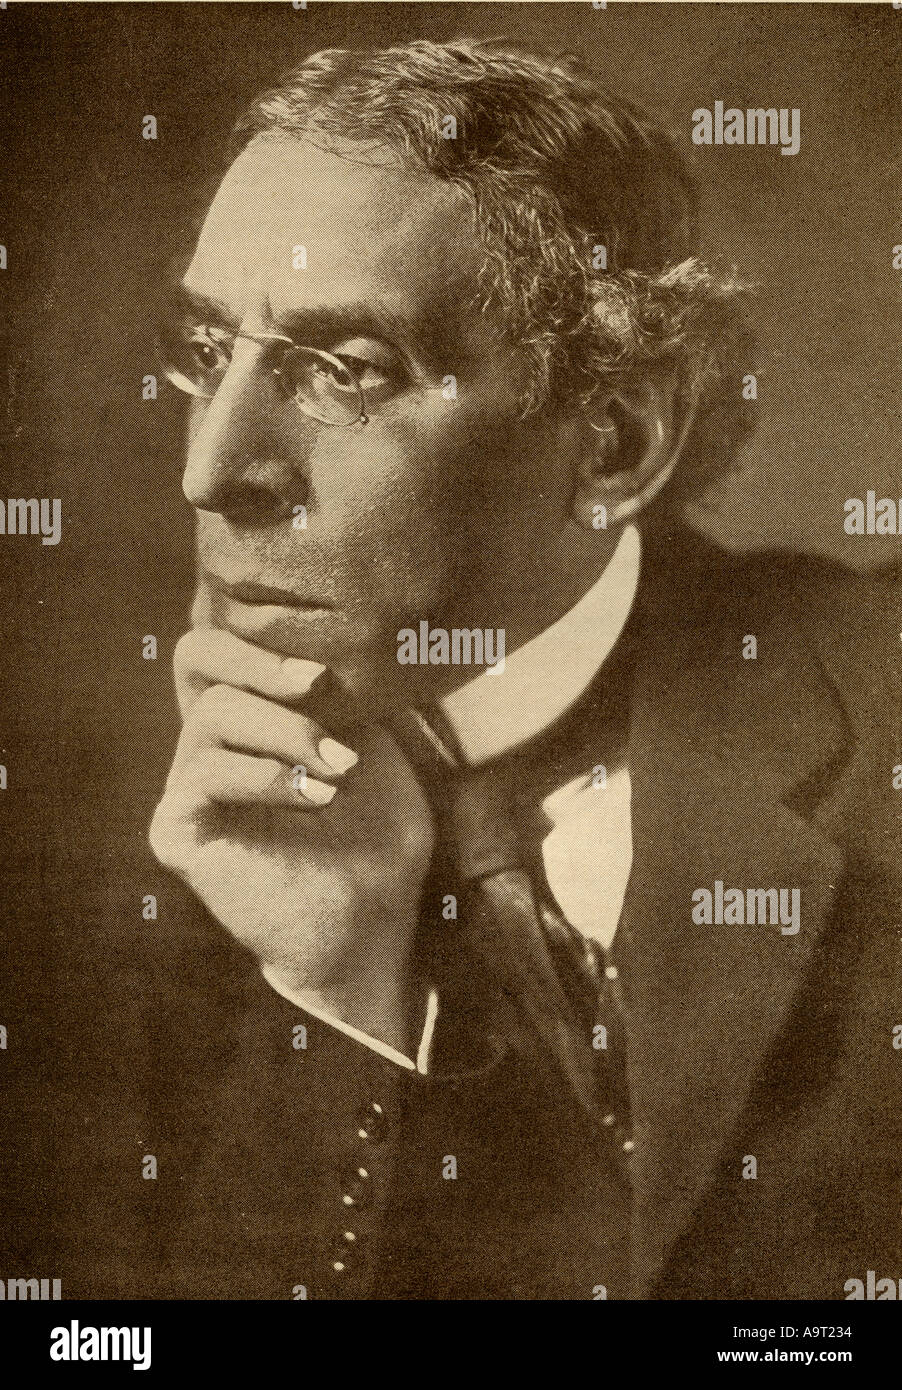 Israel Zangwill, 1864 -1926. English novelist.  From the book The Masterpiece Library of Short Stories, English, Volume 9. - Stock Image